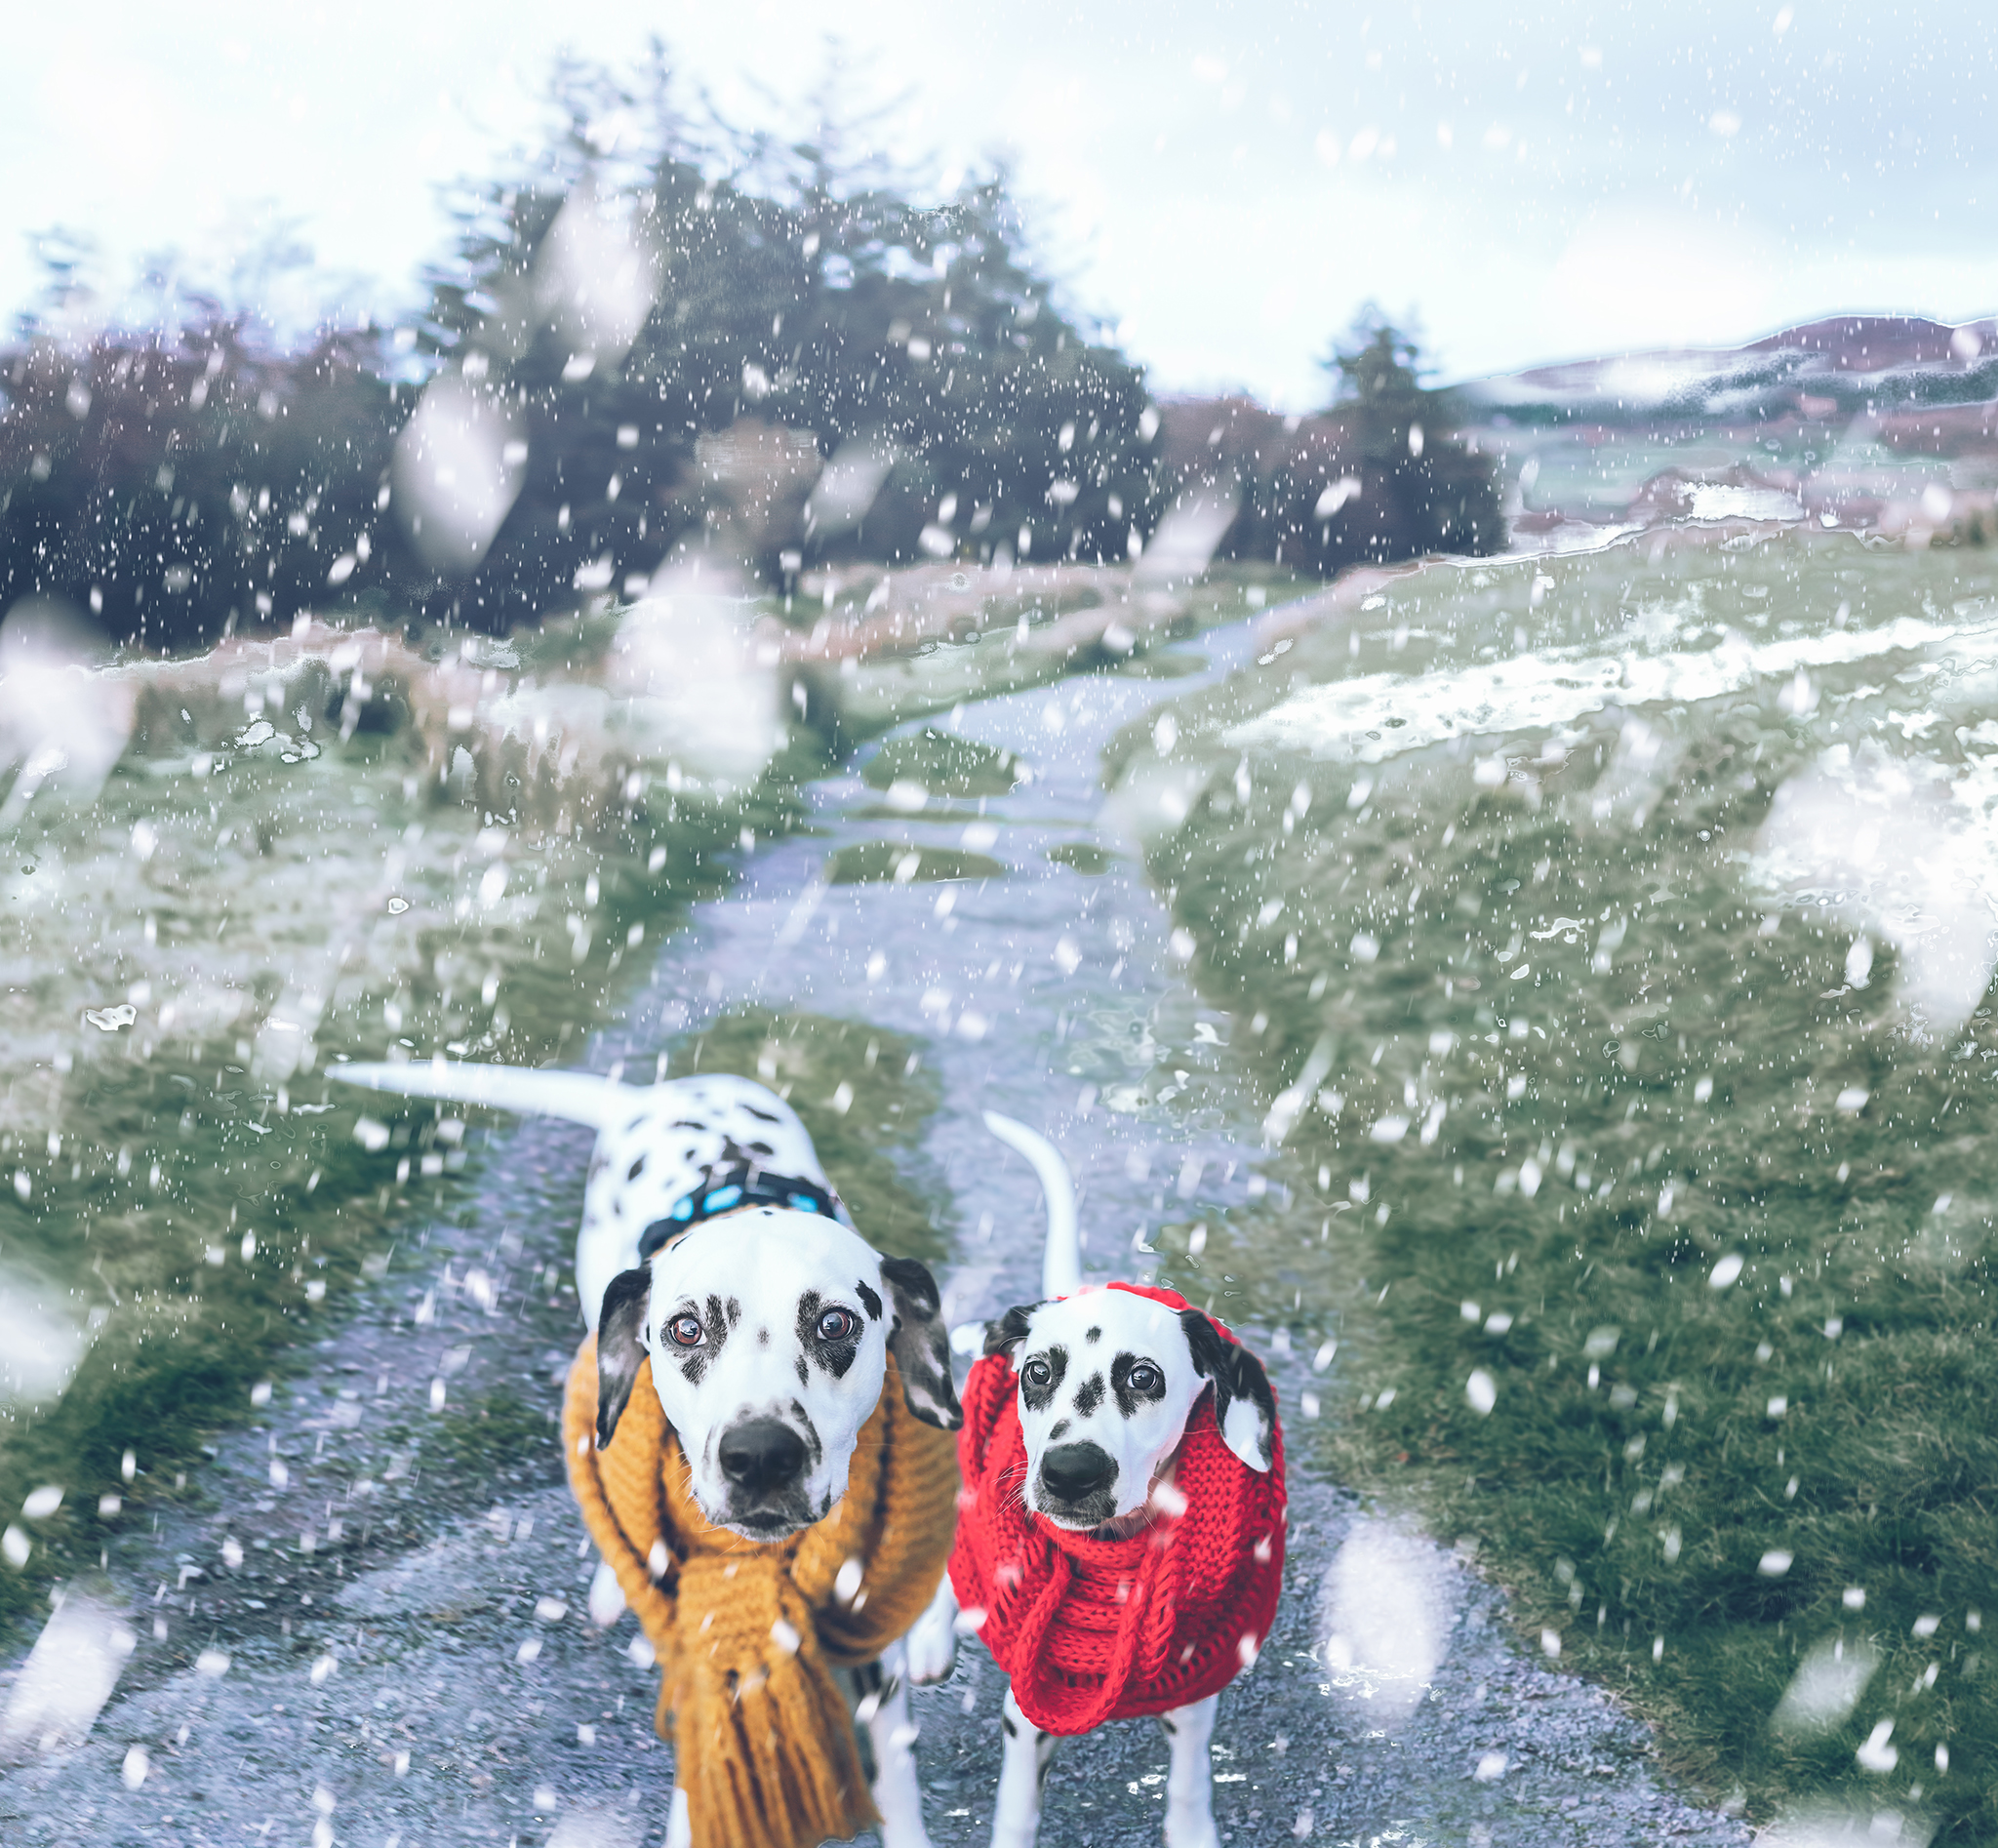 Boo&Scout's snow